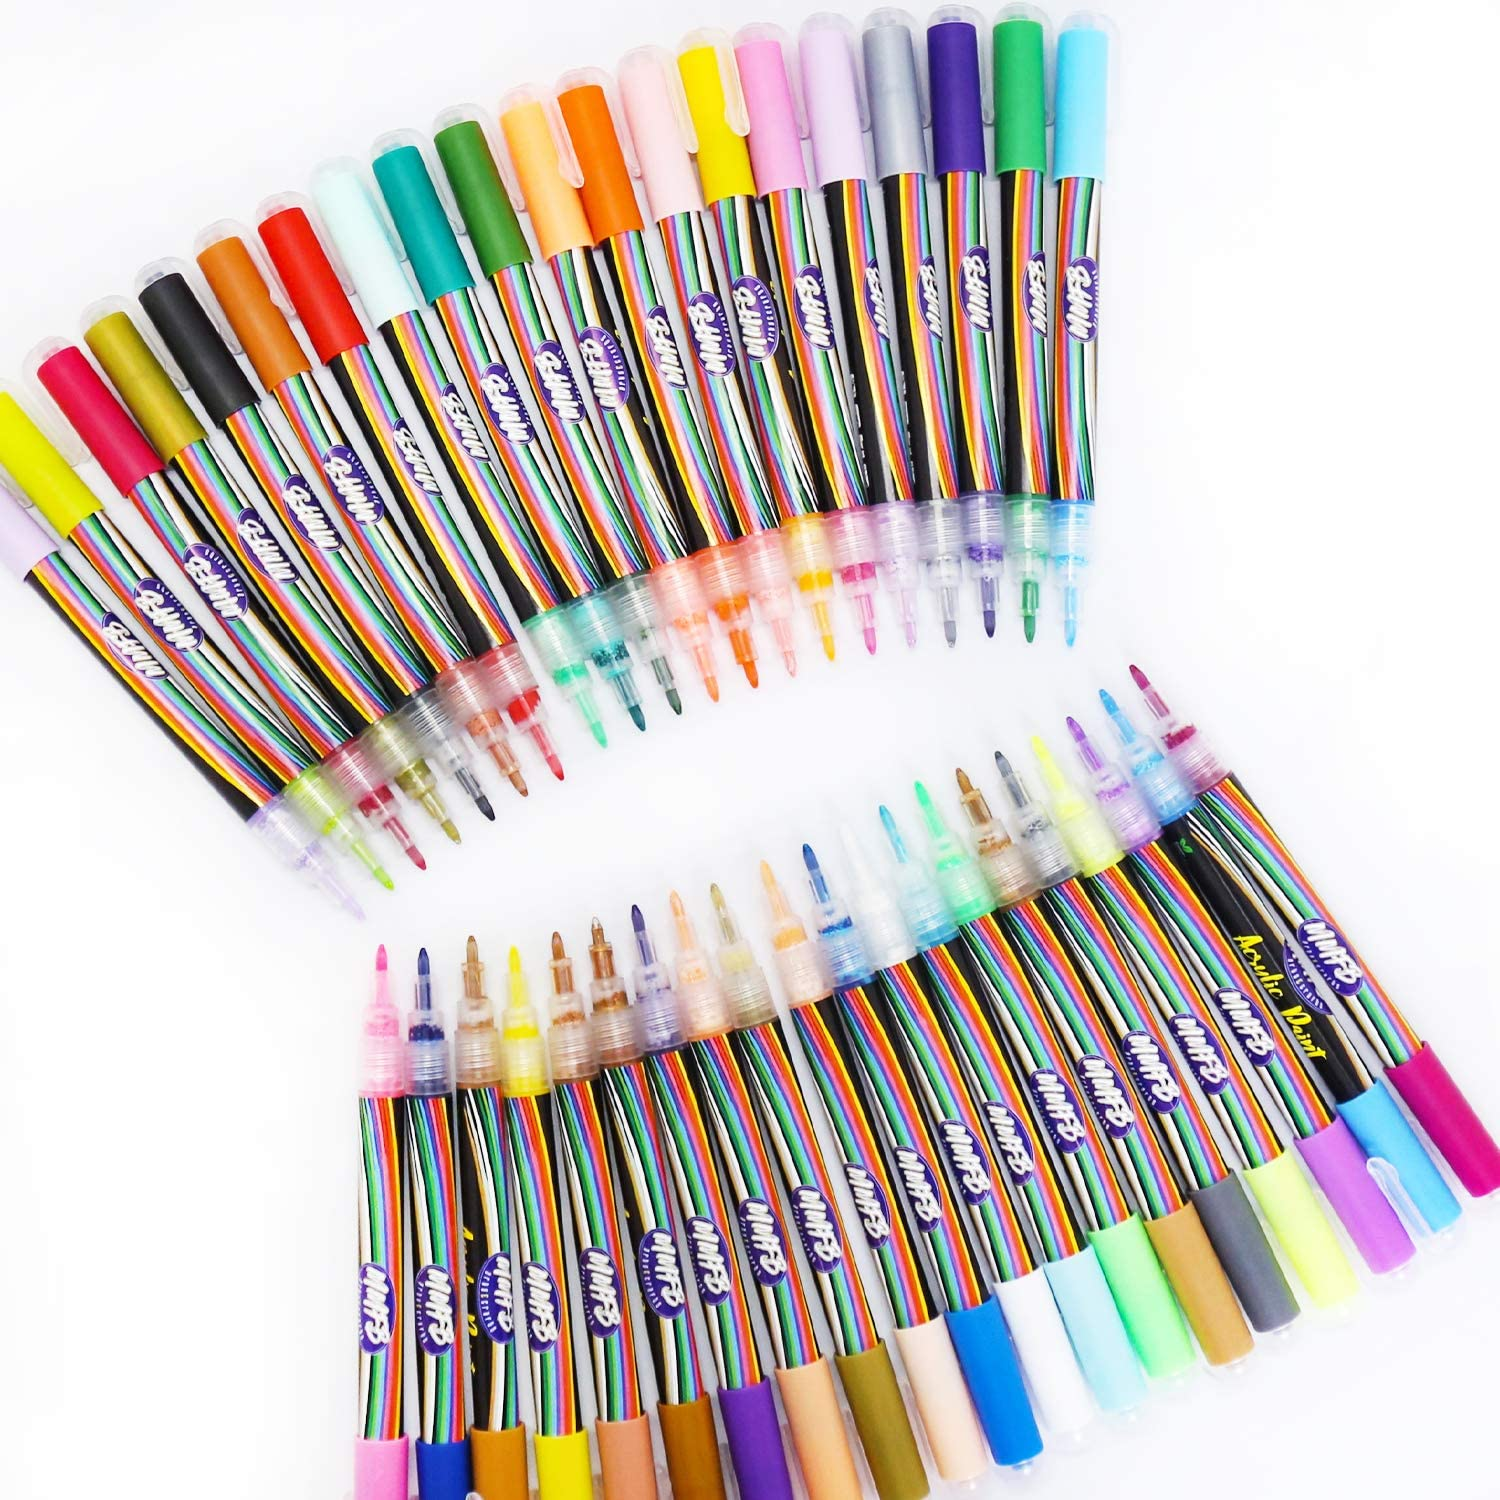 Acrylic Paint Pens (40 Colors Size XF) Craft Paint Markers for Painting Wood, Glass, Rock, Ceramic, Porcelain - Non Toxic Paint Pen with Extra Fine Tip - Pens with Zipper Pouch w/ Splinter Free Caps